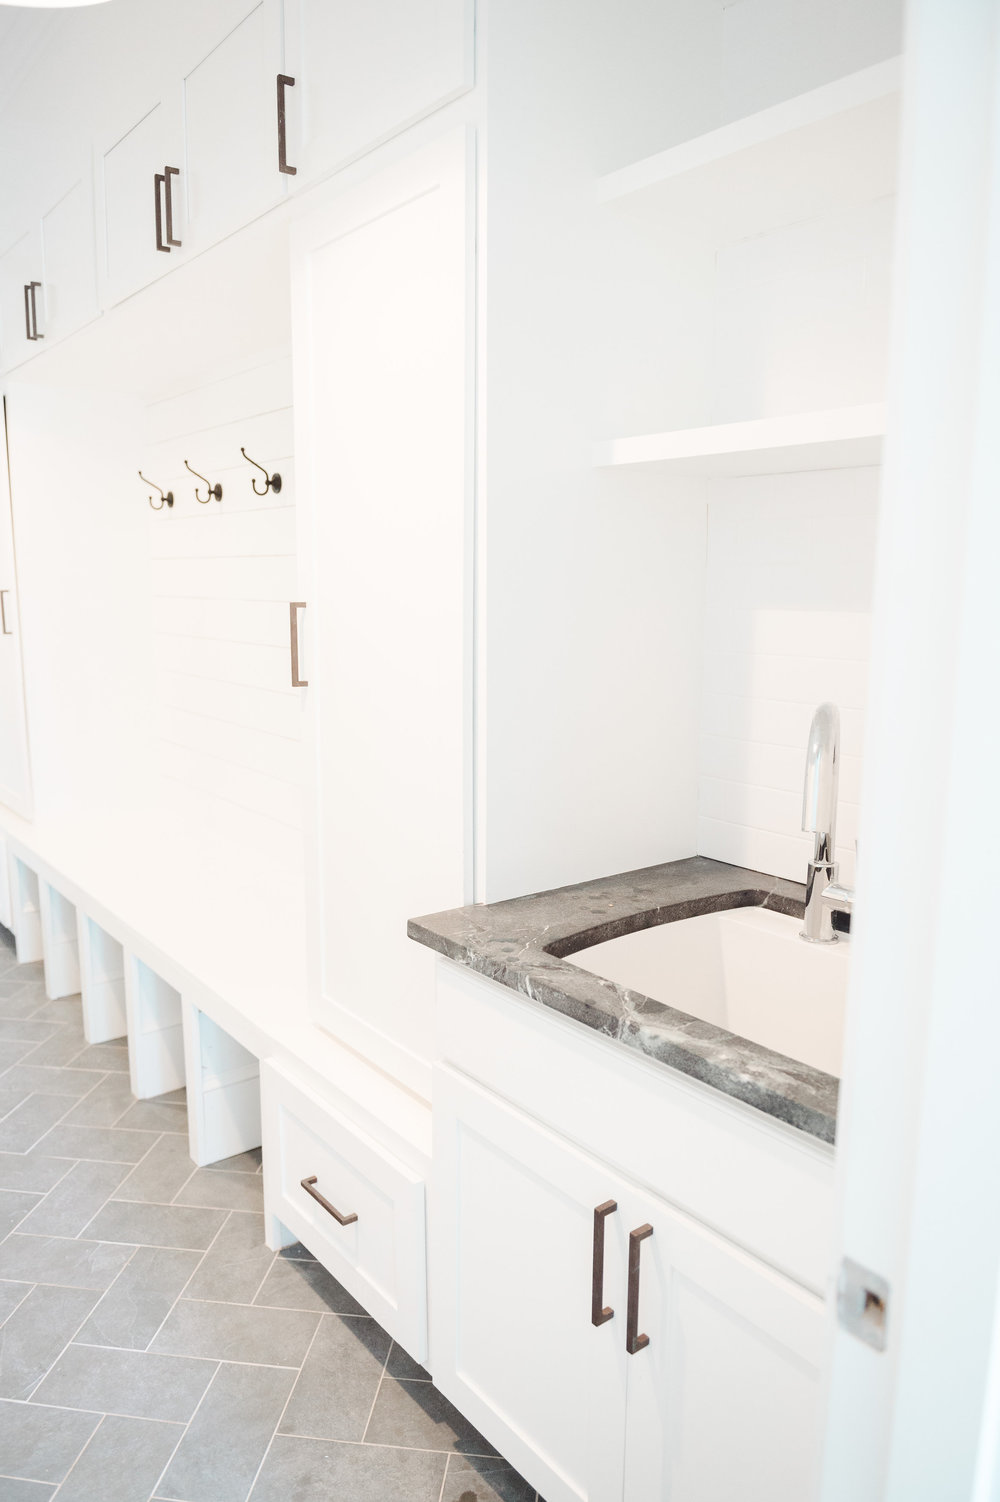 Entry way sink with built-in shoe bins and shelves